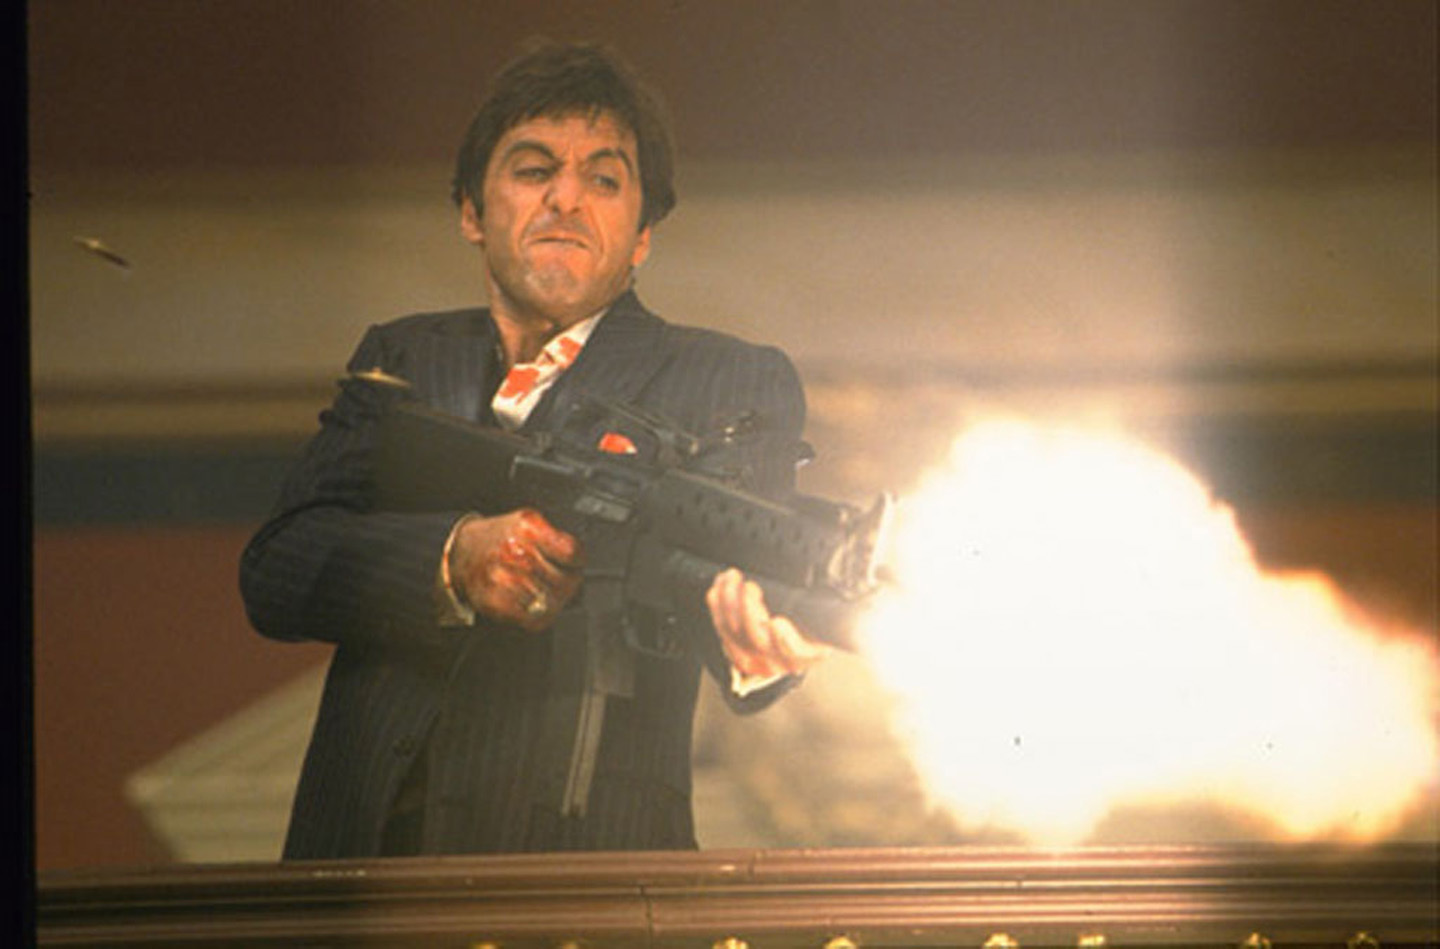 Guns Scarface film Al HD Wallpaper